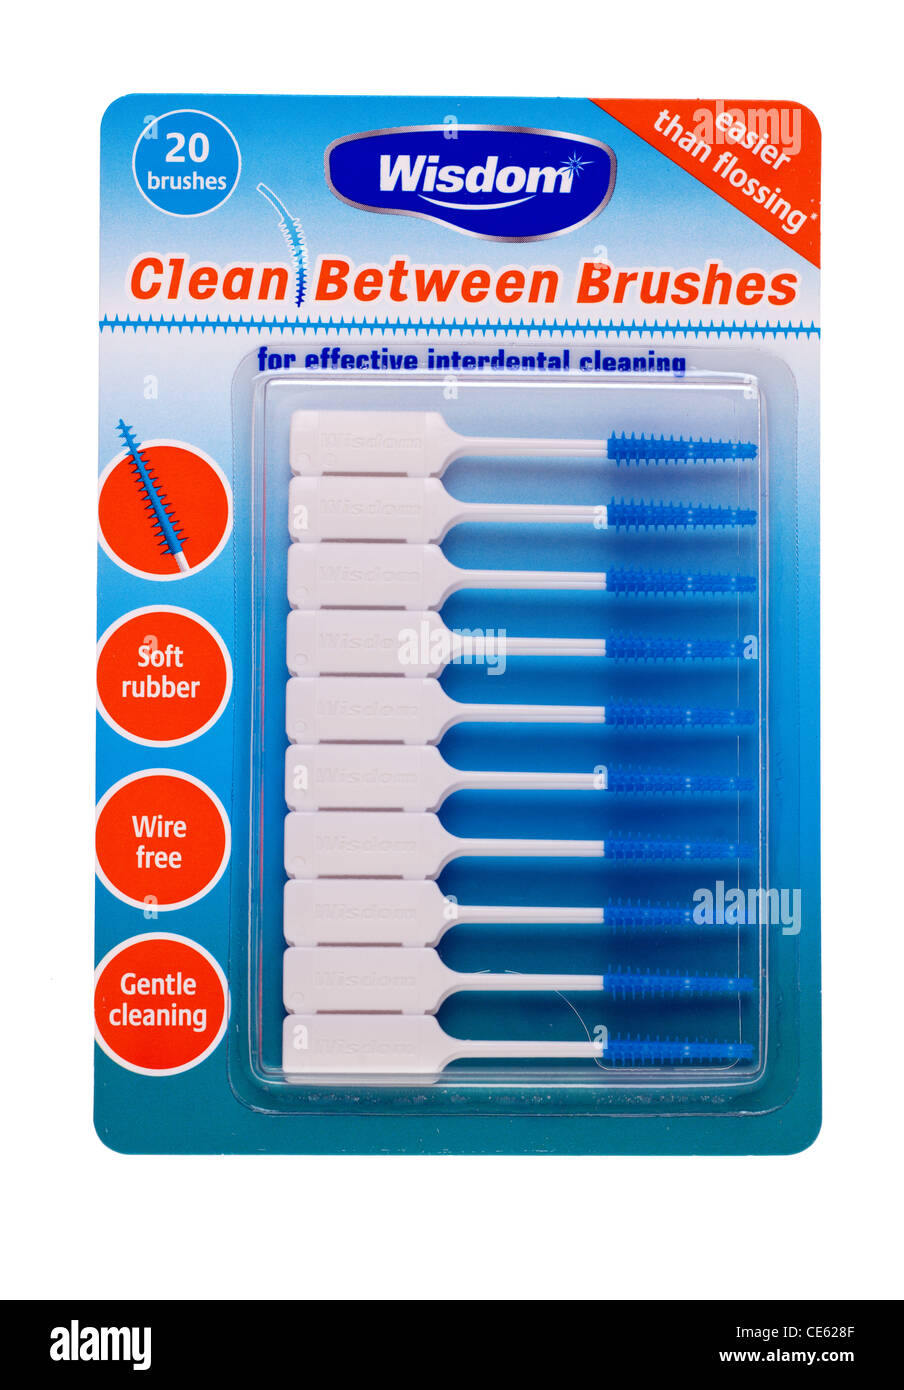 Pack of 20 interdental tooth brushes from Wisdom - Stock Image